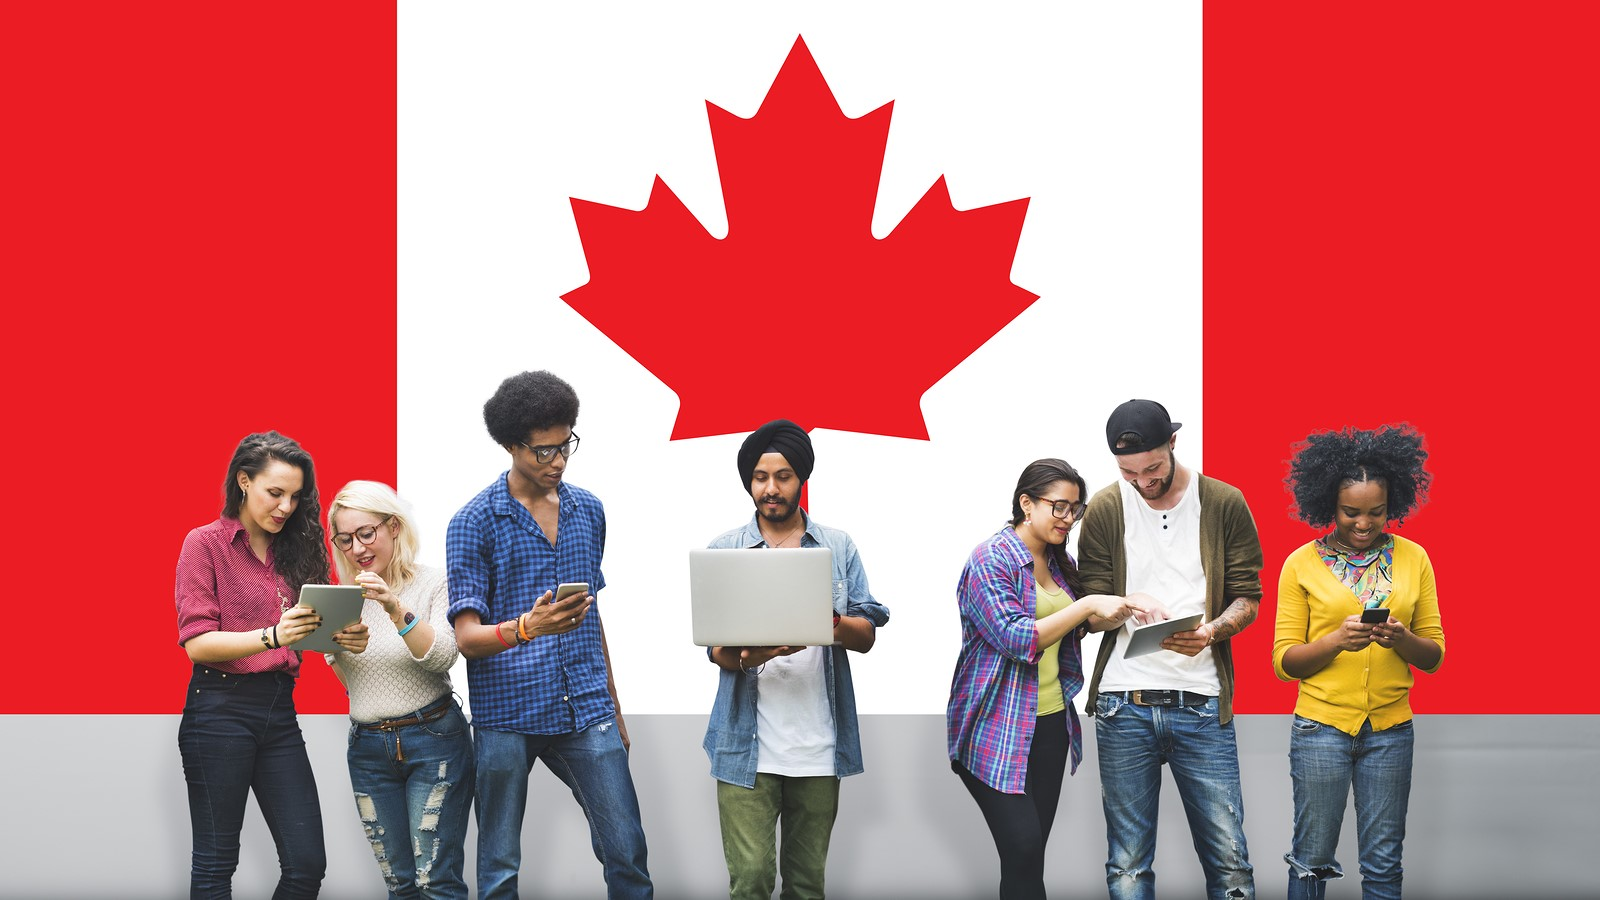 Canada National Flag Studying Diversity Students Concept